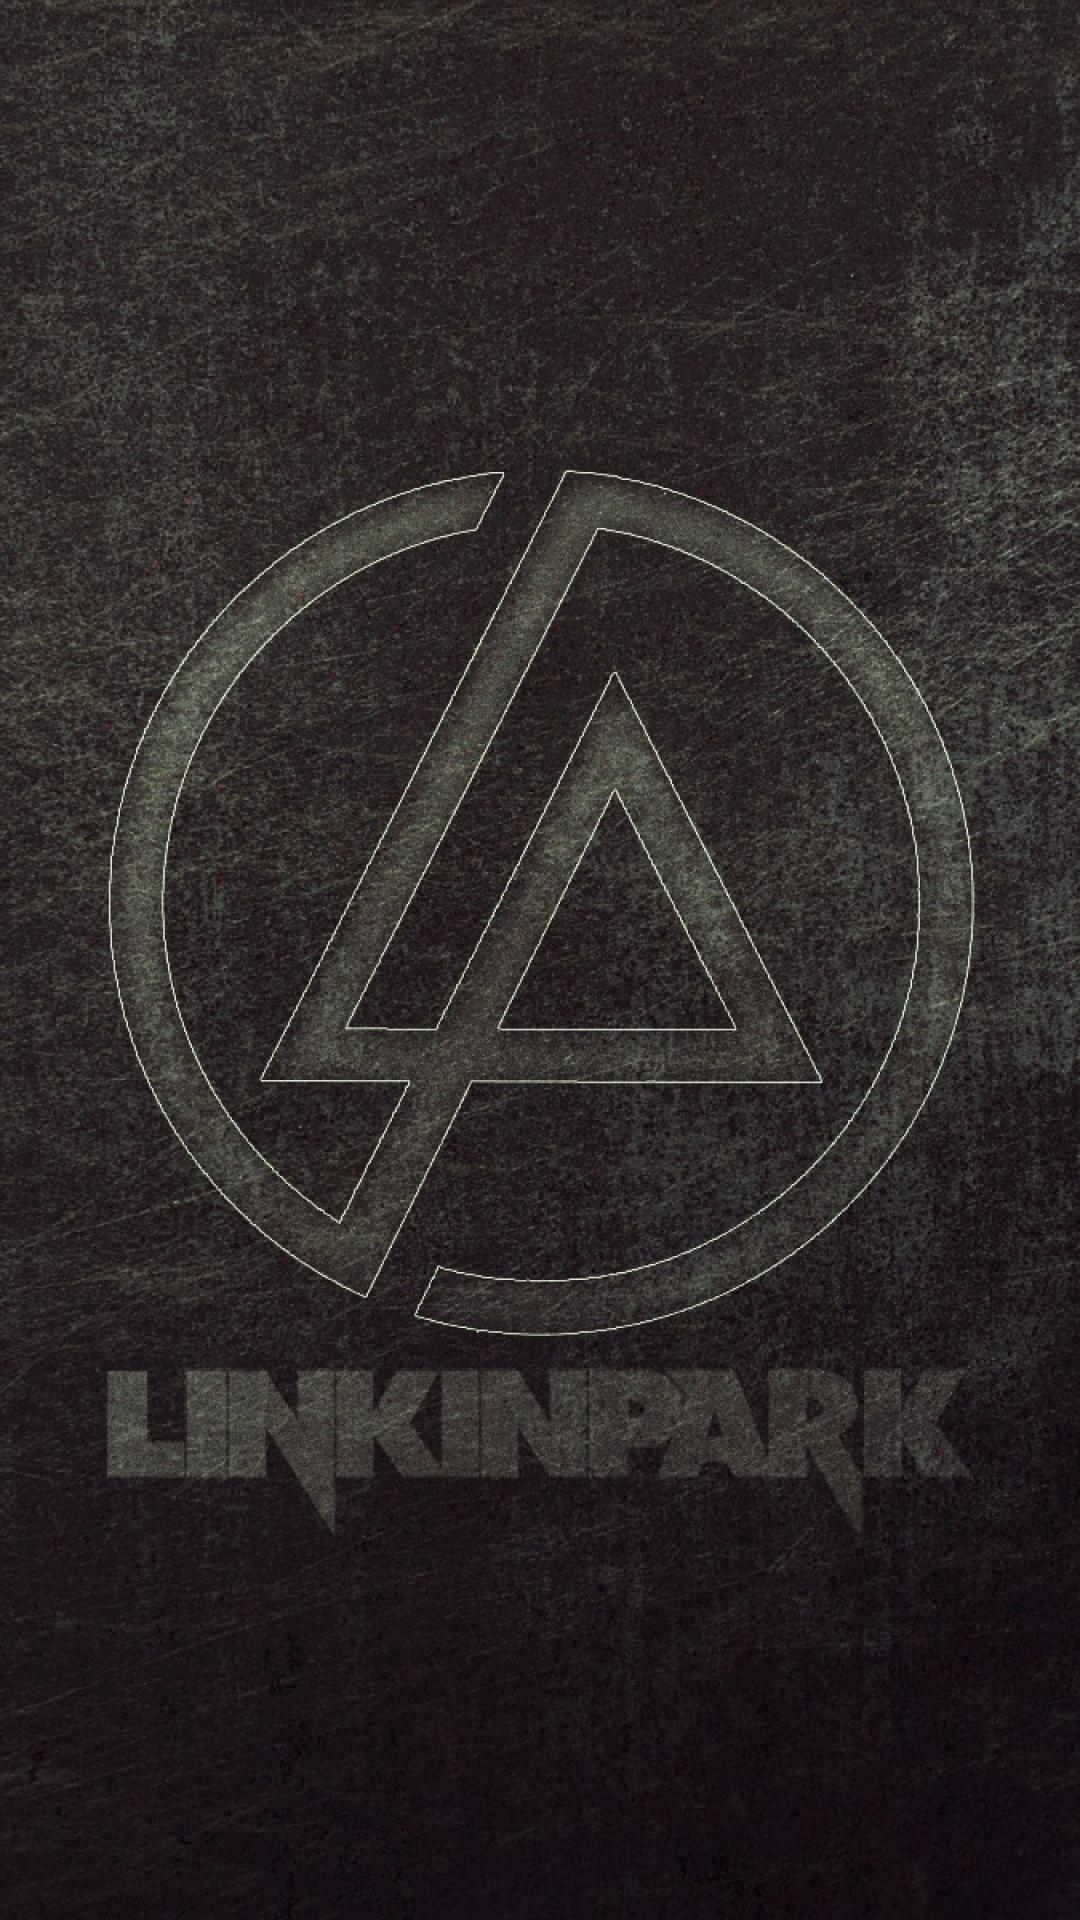 Linkin Park Wallpapers Pitch Black Wallpaper Cave